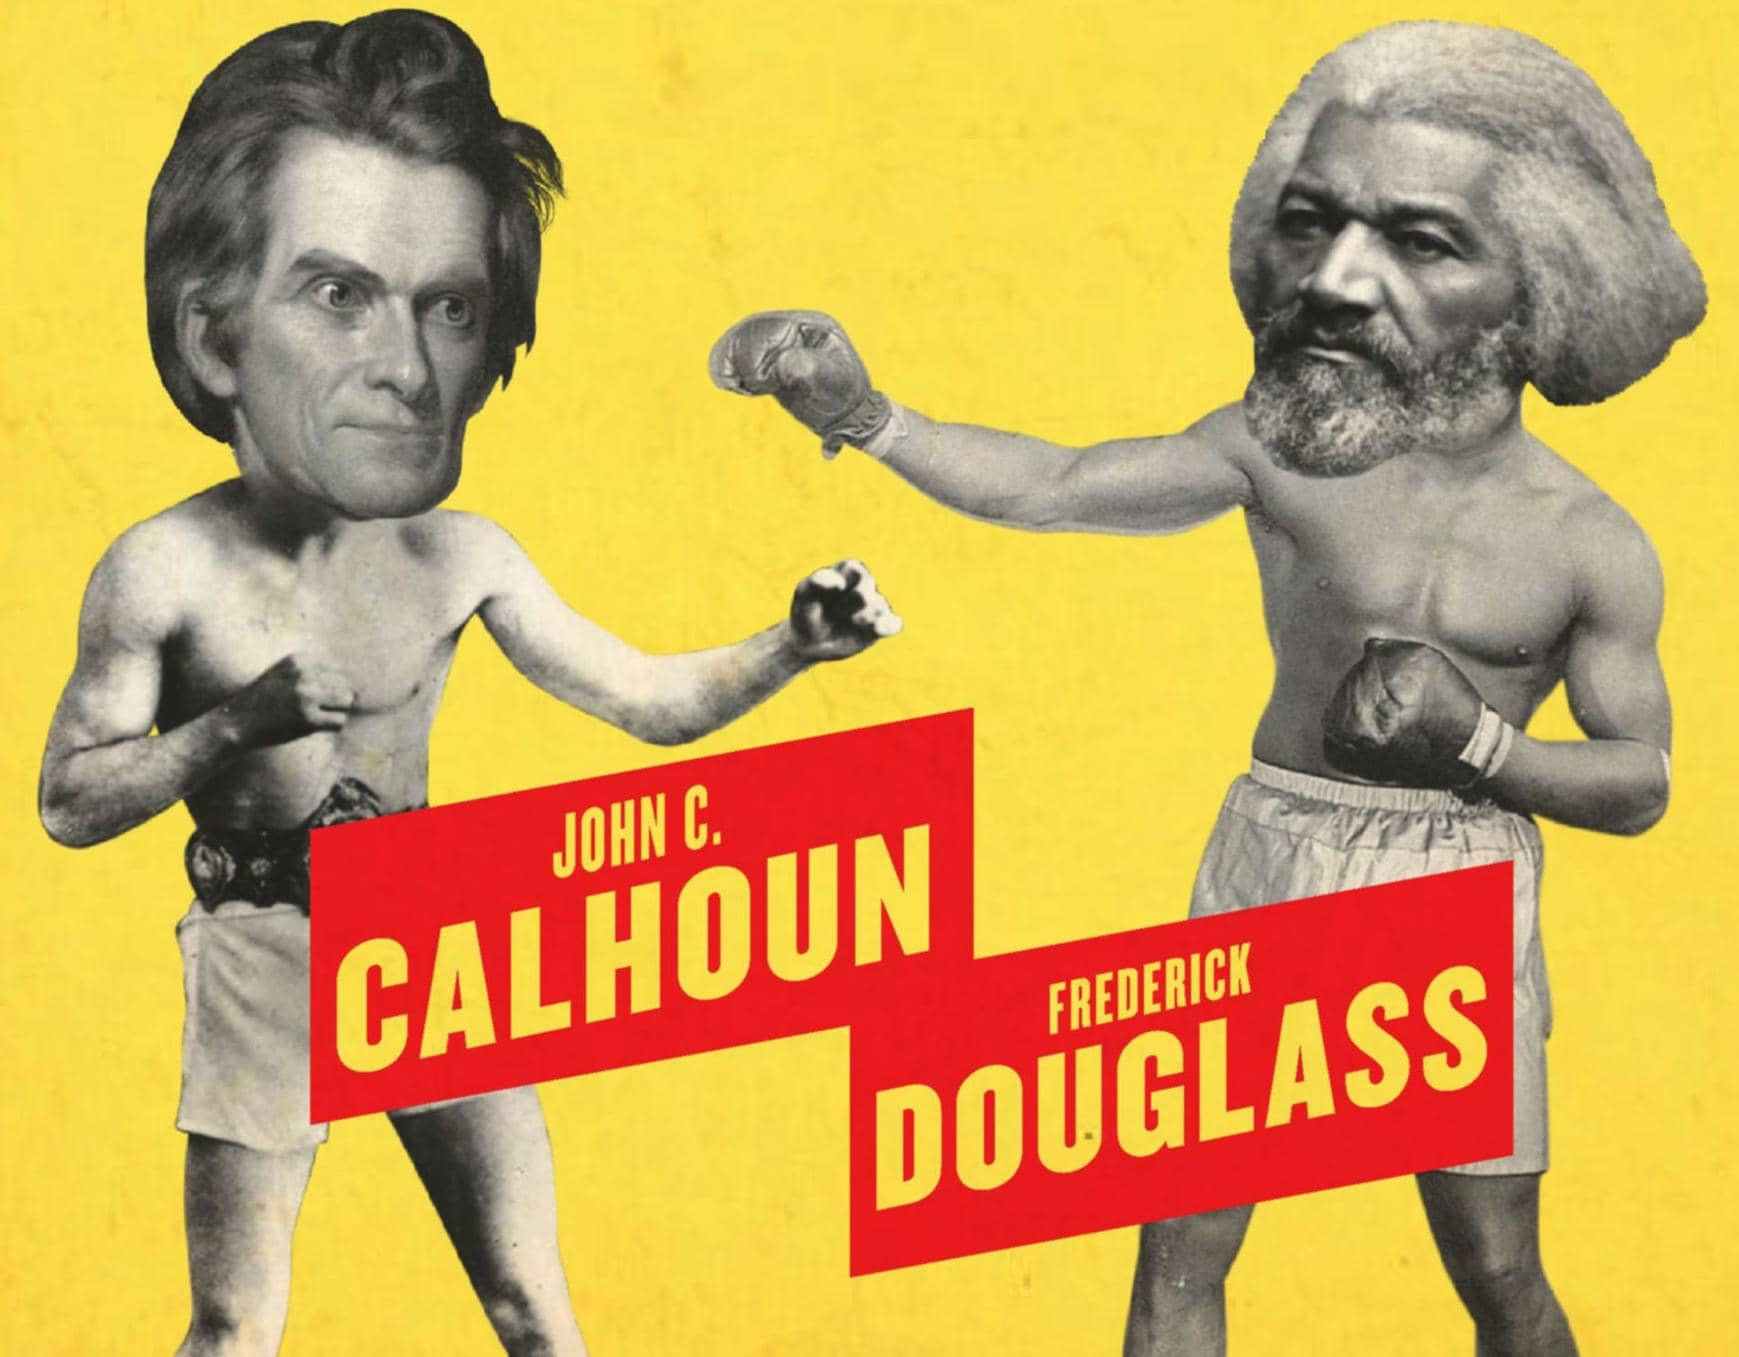 HOW FREDERICK DOUGLASS DESTROYED JOHN C.CALHOUN WITH THE POWER OF JOHN LOCKE